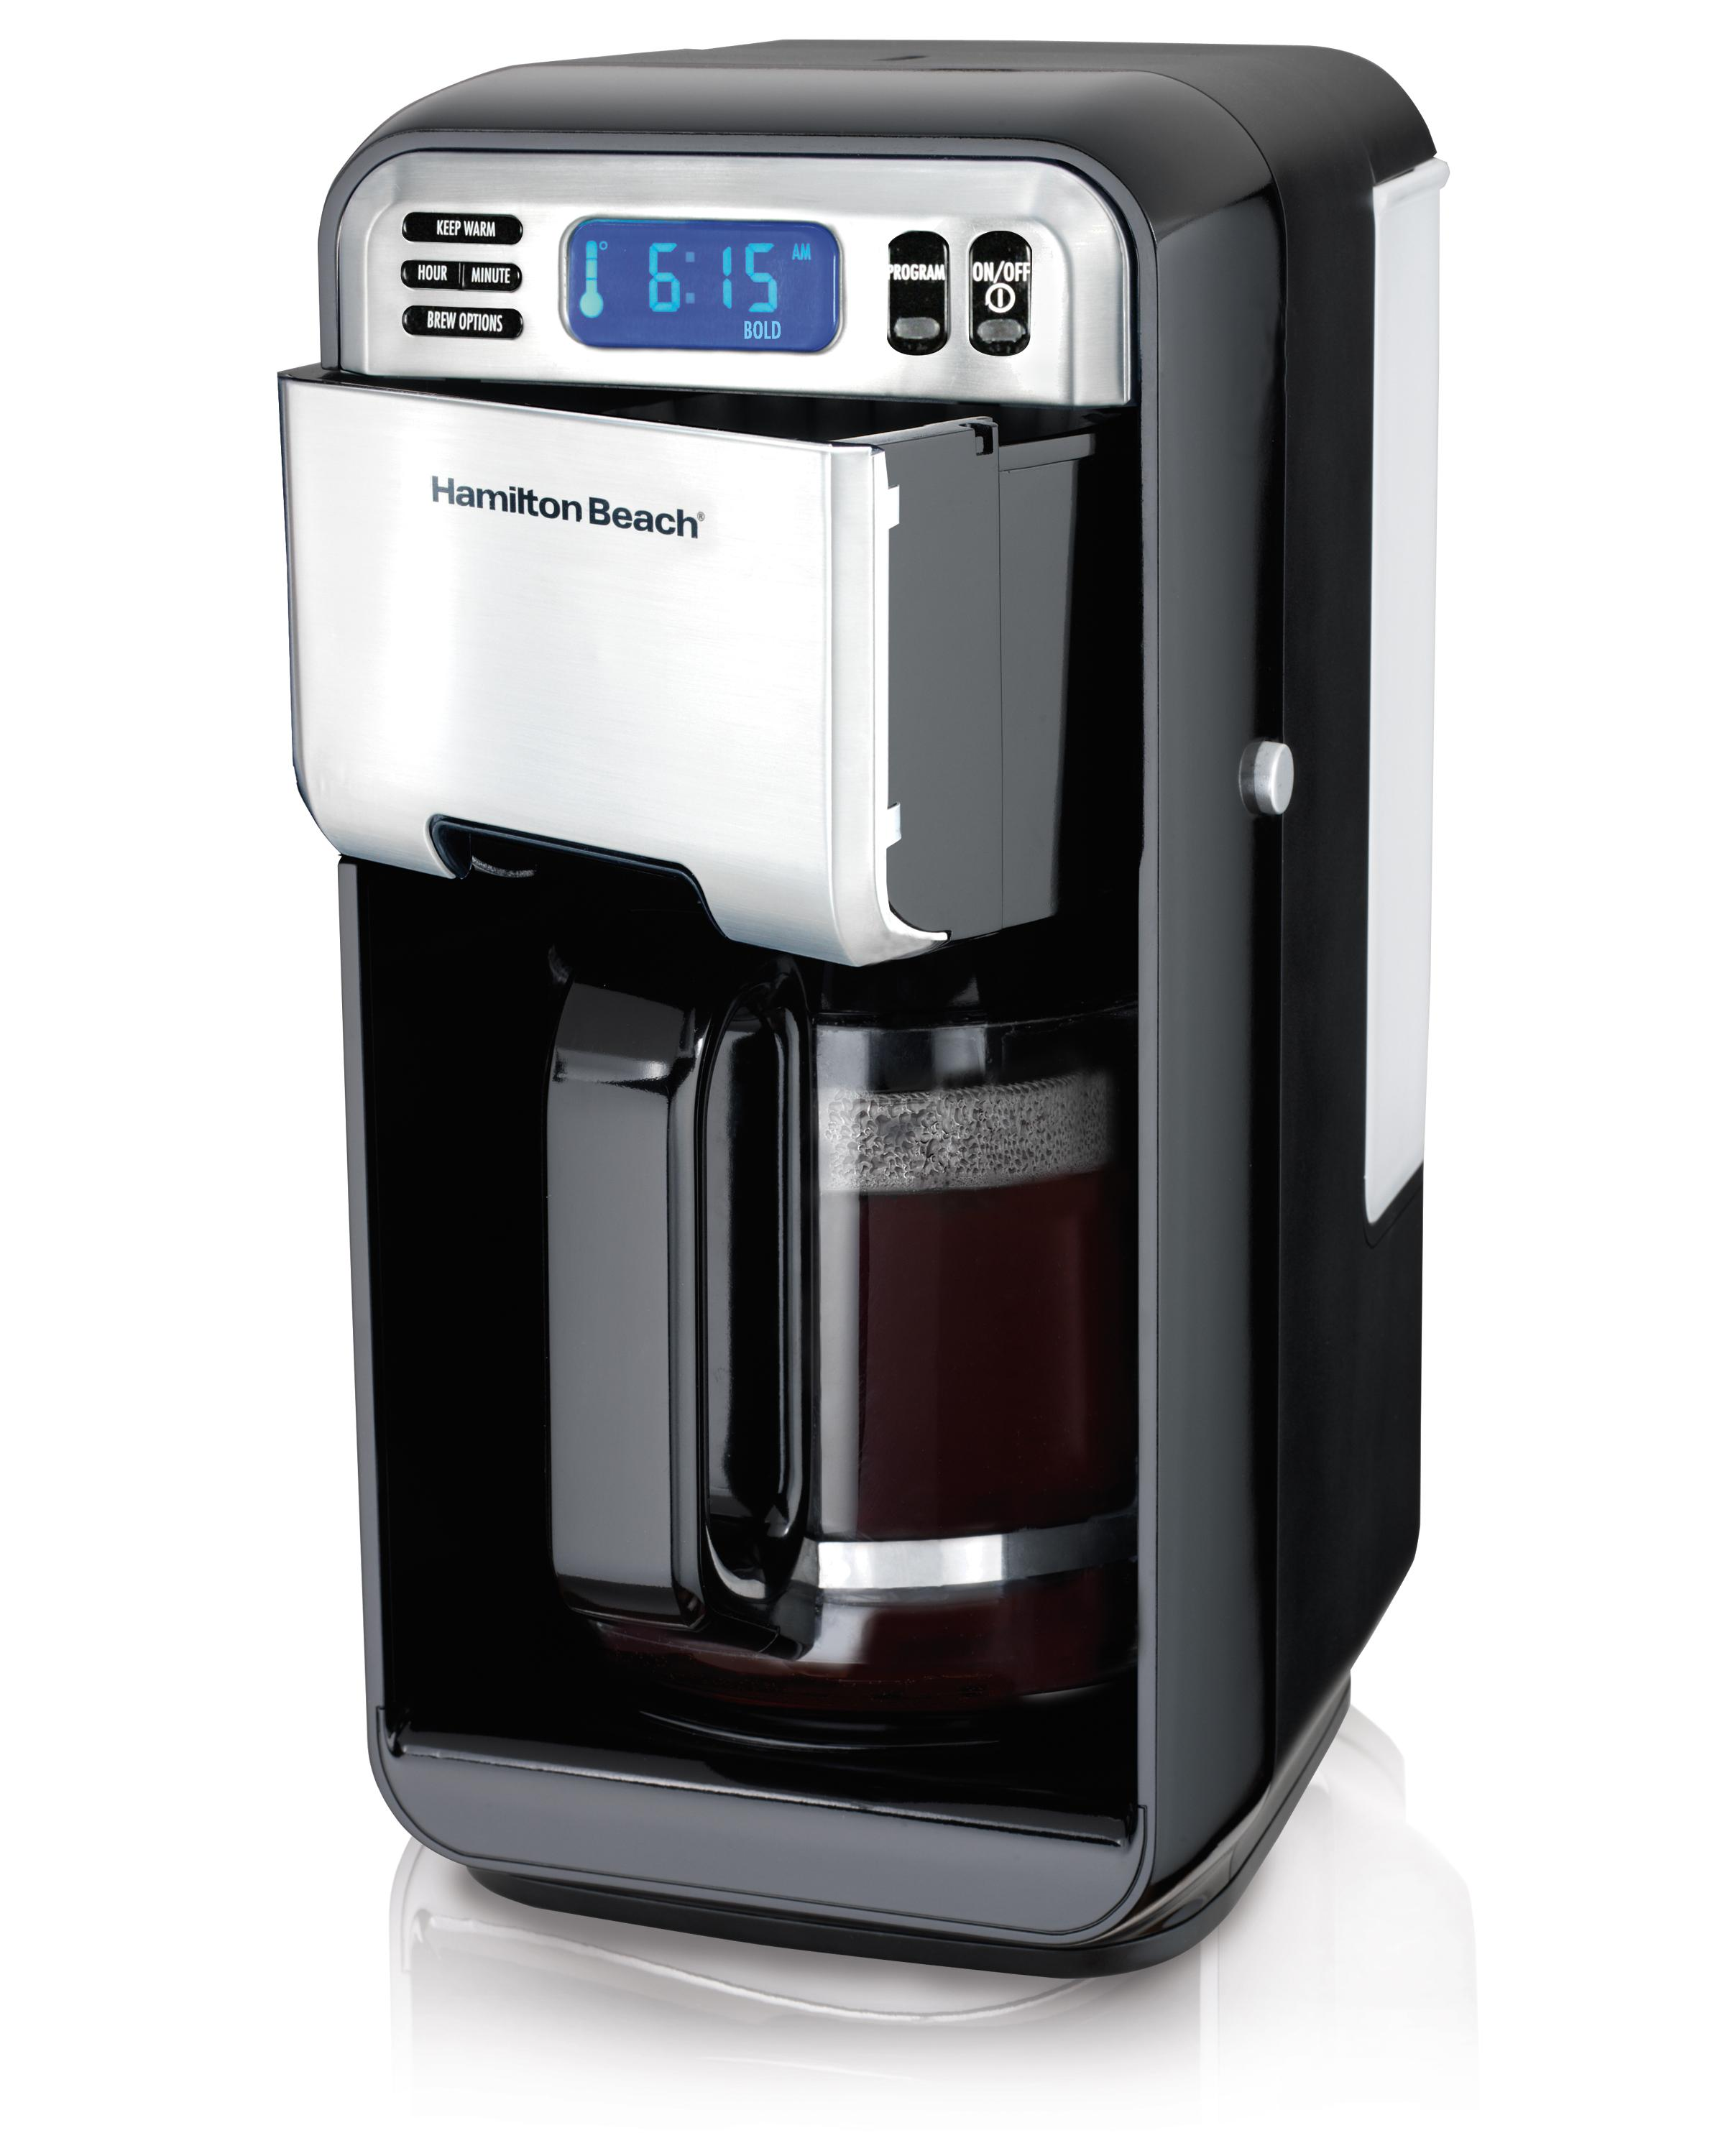 Cleaning Large Coffee Maker : Amazon.com: Hamilton Beach 12-Cup Digital Coffee Maker, Stainless Steel (46201): Drip ...